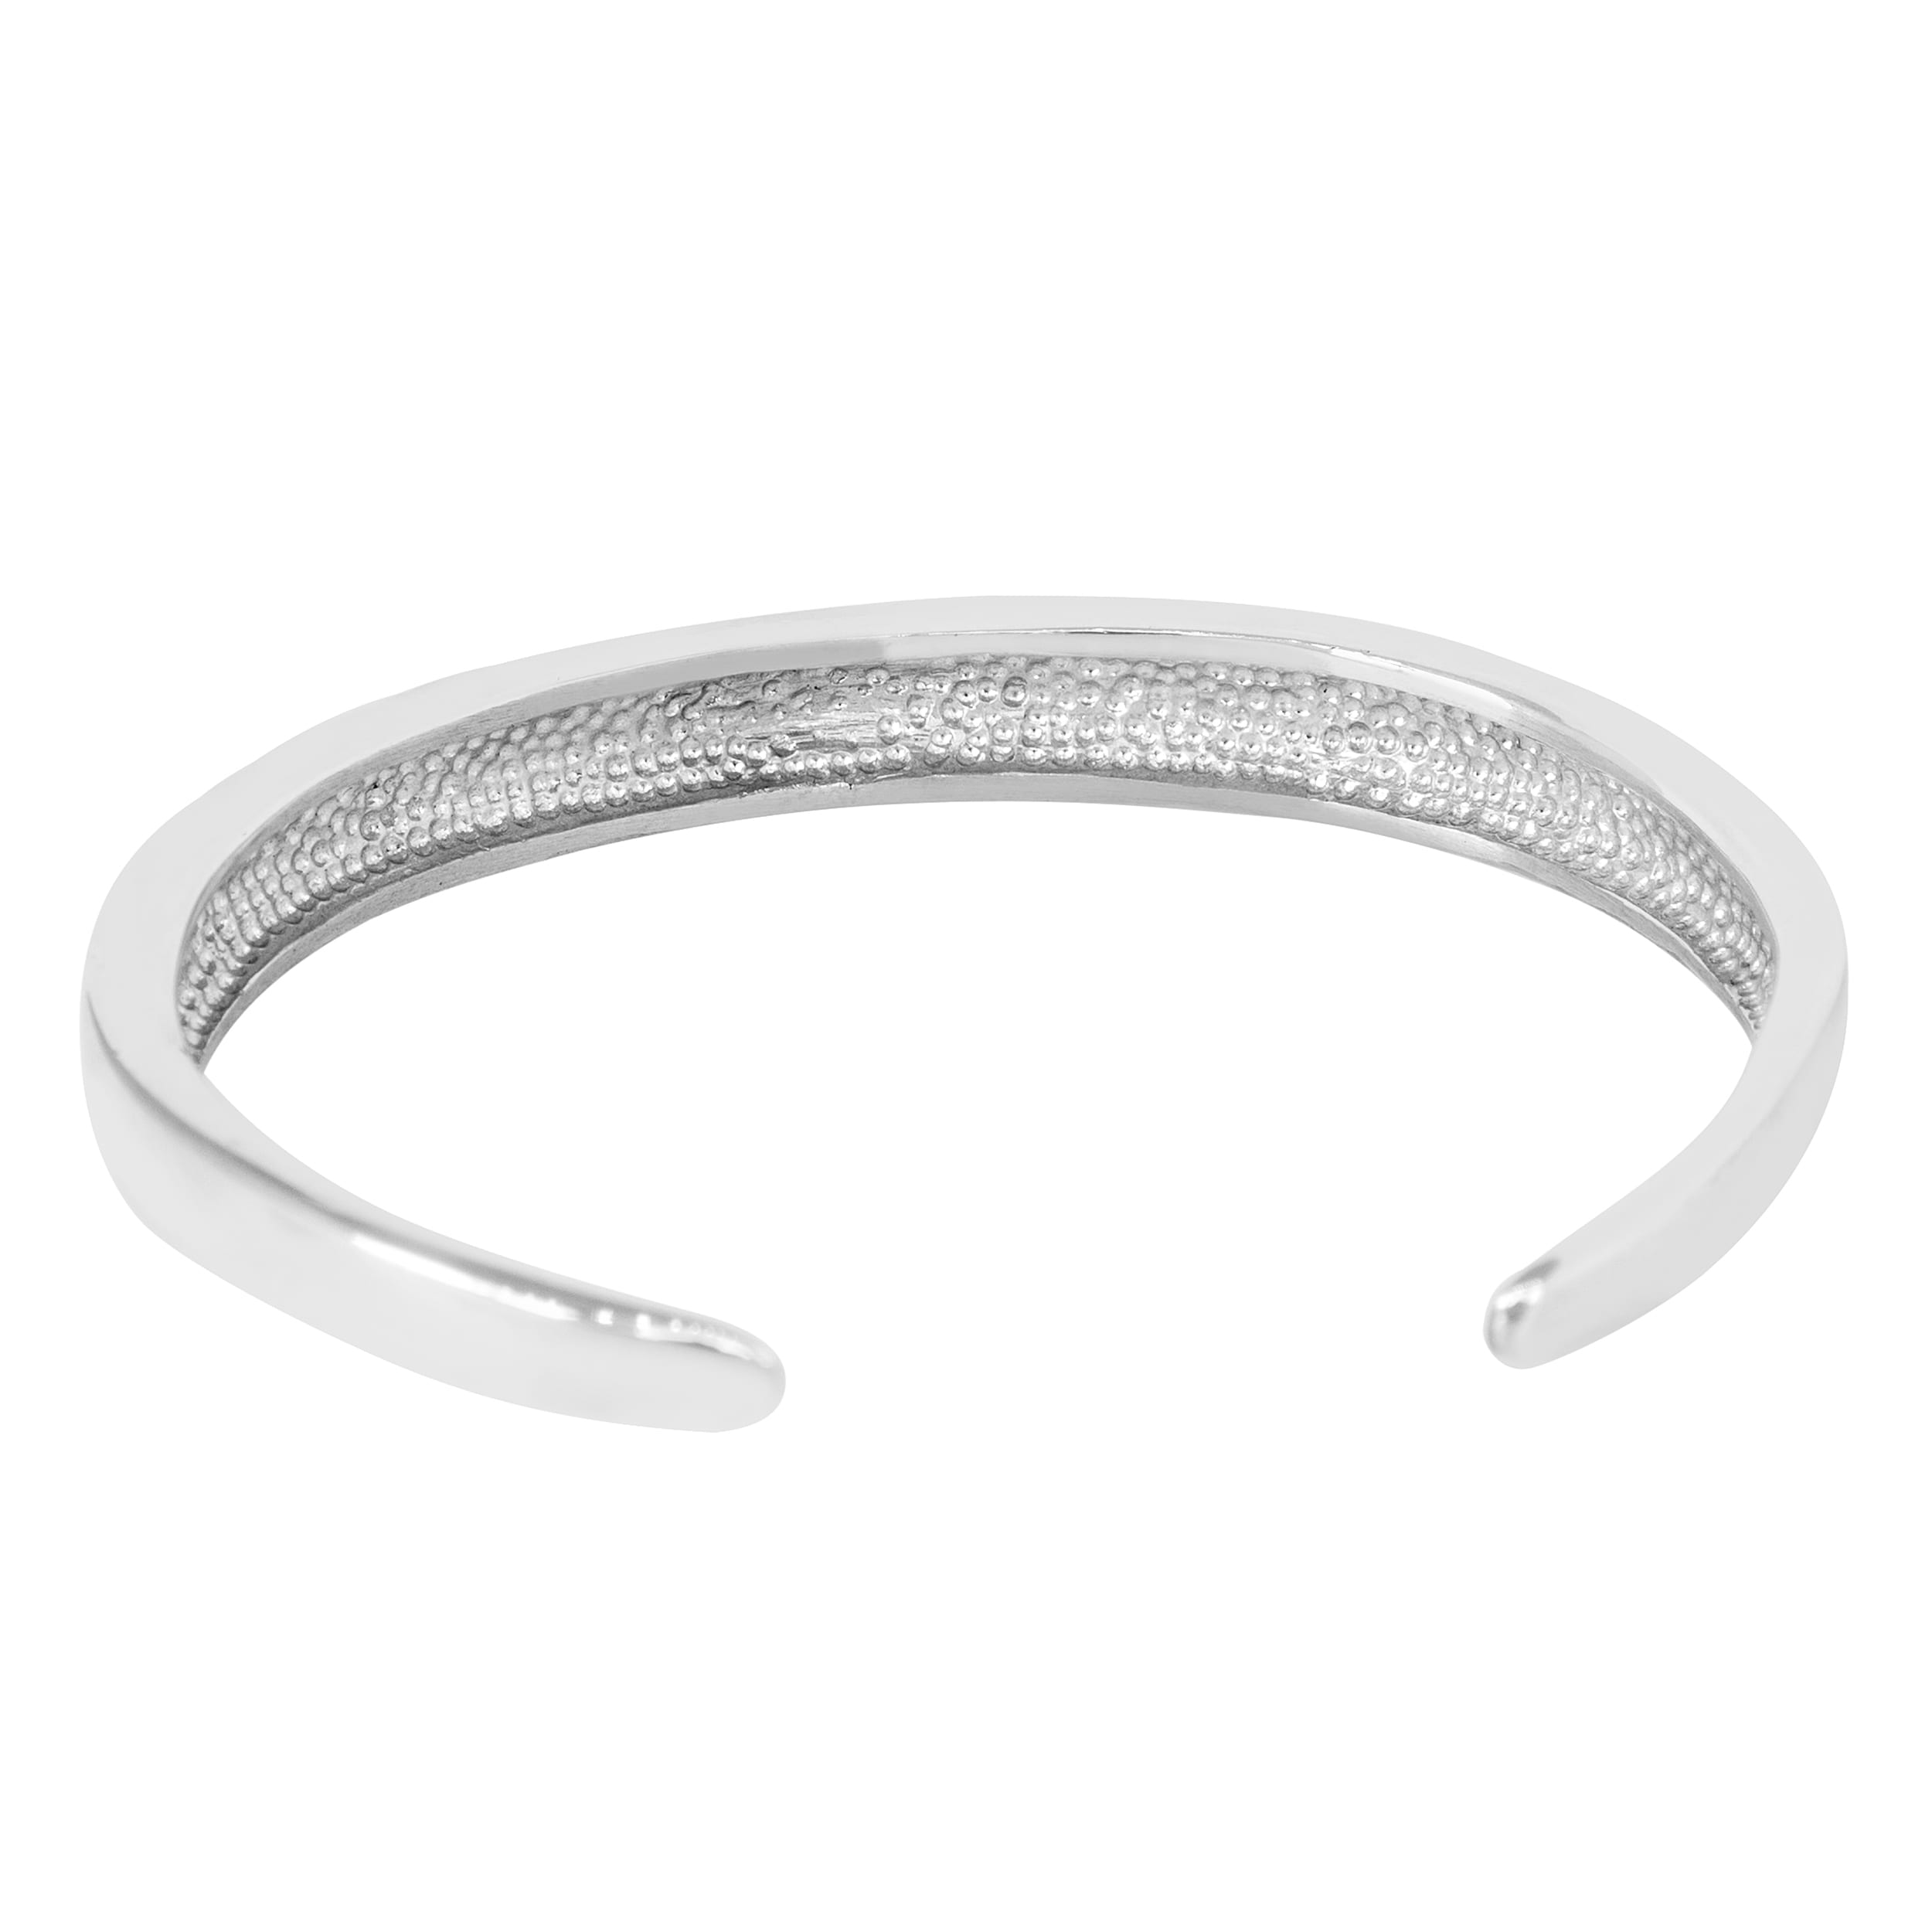 diamond bangle bracelets id at for bangles j gold jewelry turkish sale silver and l